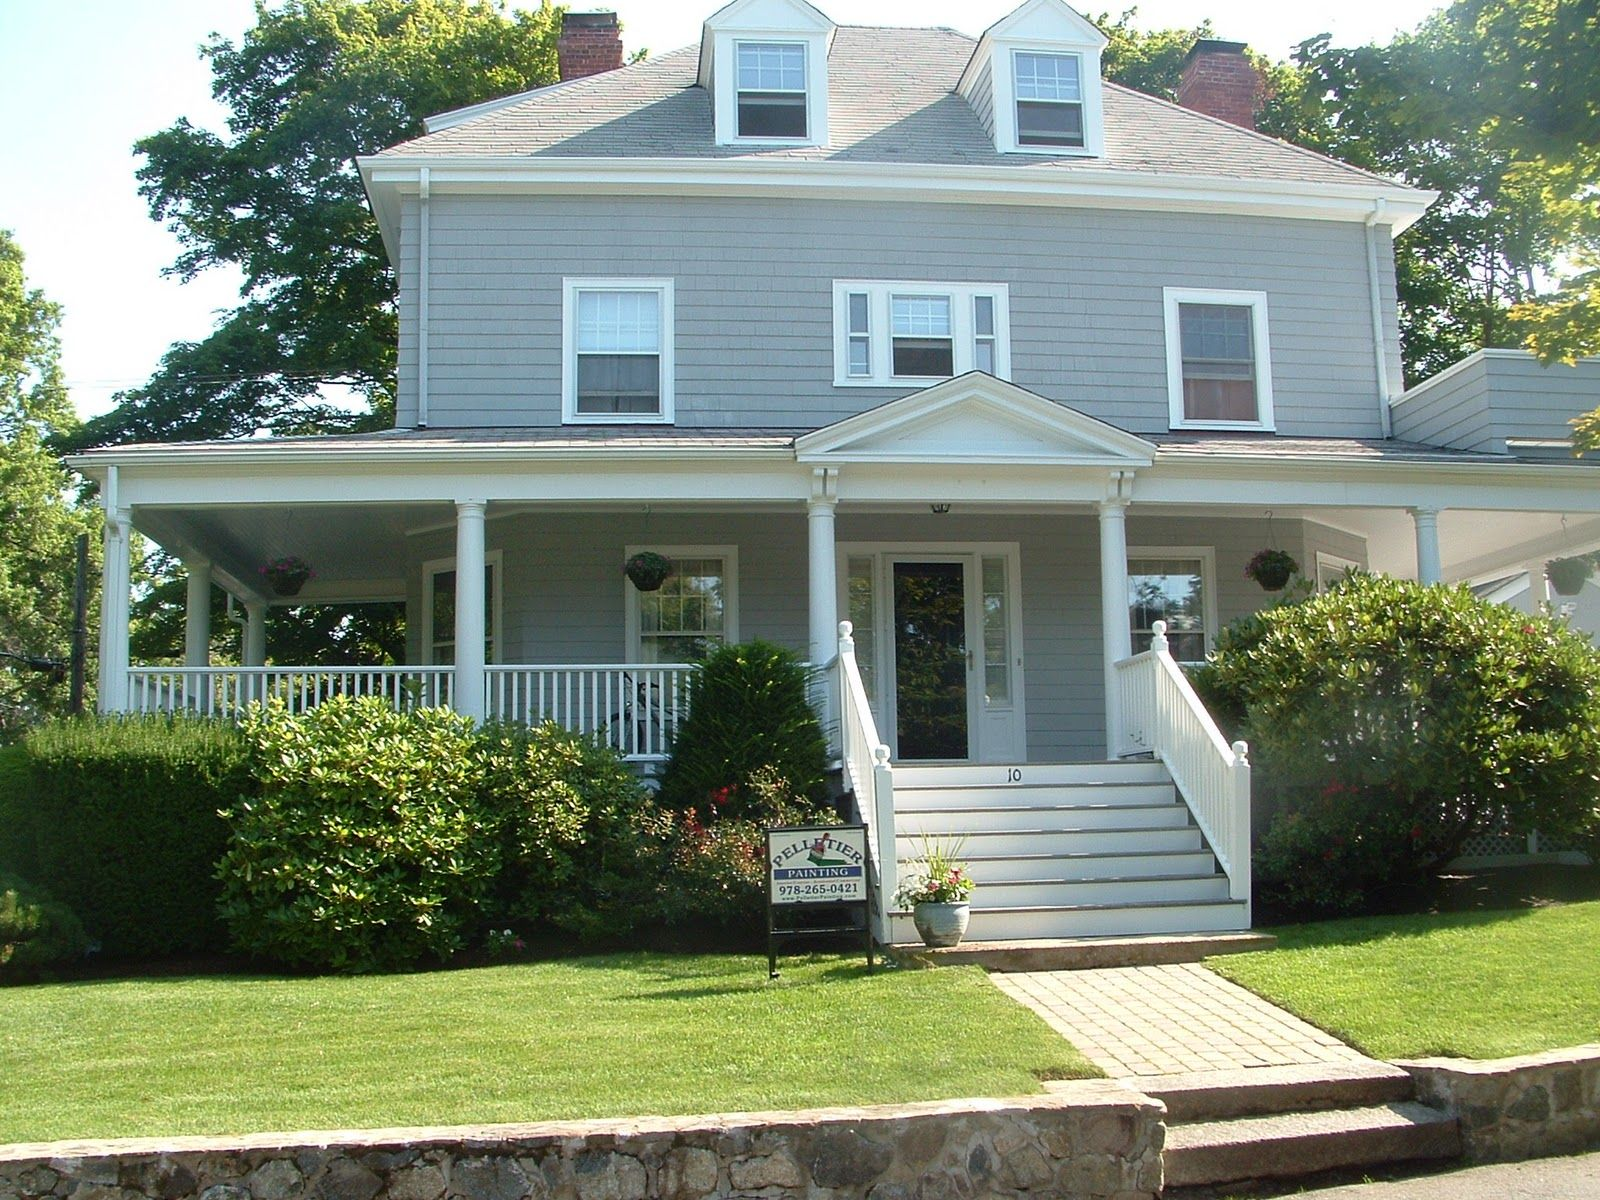 paint problem solved with images house exterior on benjamin moore paint exterior colors id=69711